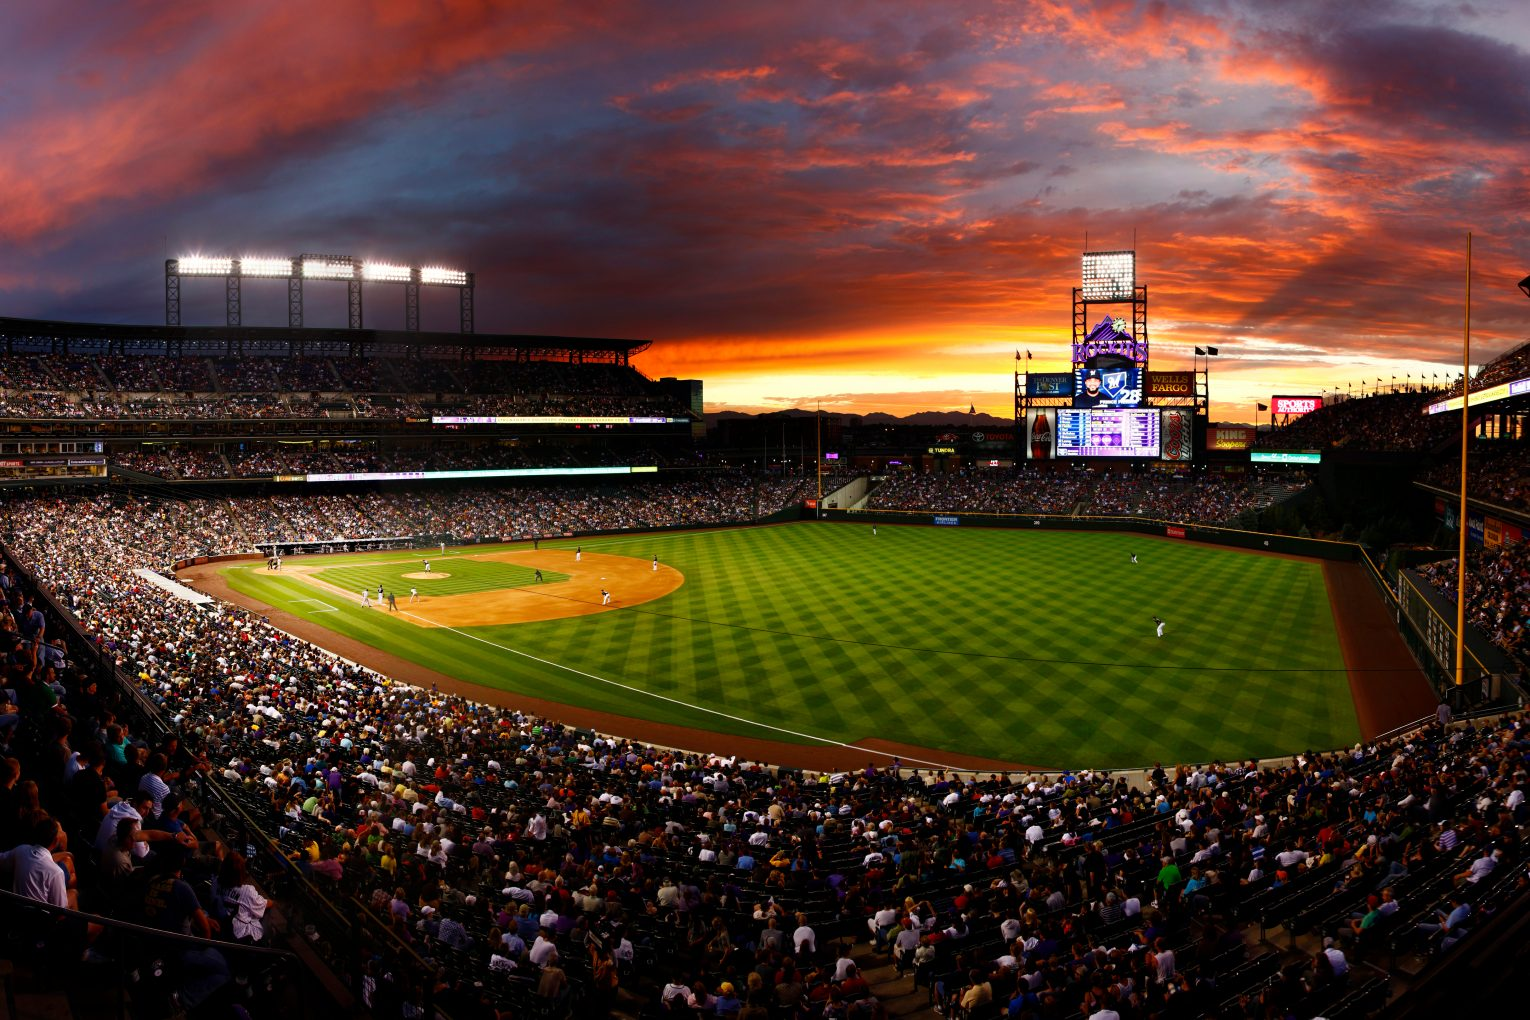 Colorado Rockies stadium at sunset